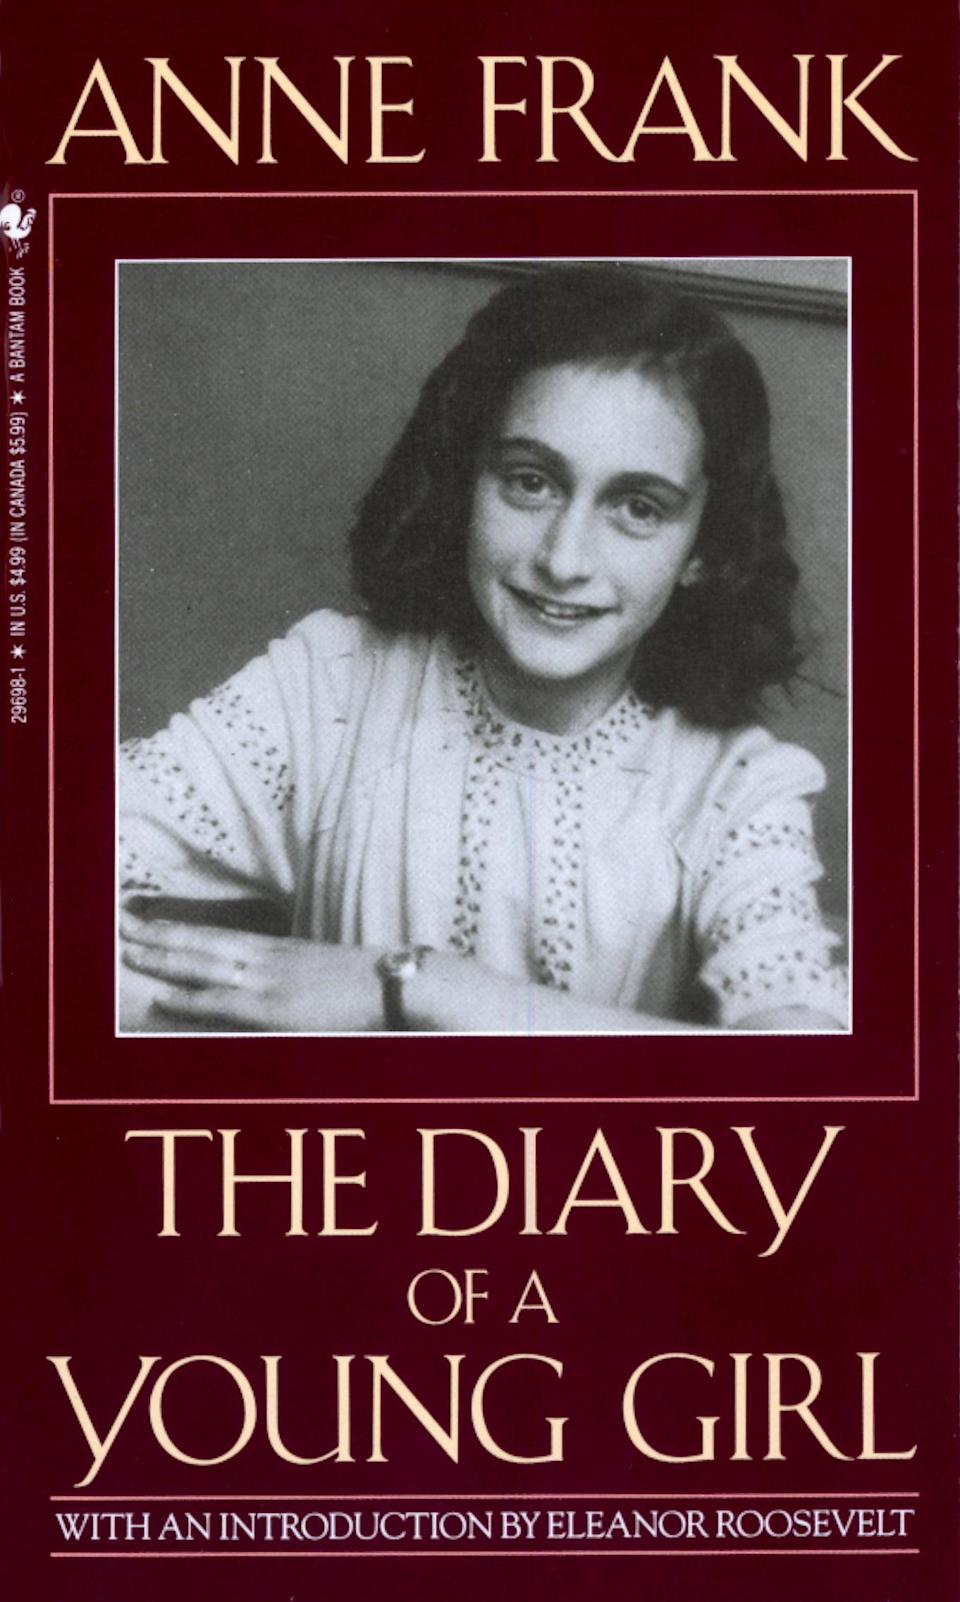 "<p><a href=""https://www.popsugar.com/buy?url=https%3A%2F%2Fwww.amazon.com%2FAnne-Frank-Diary-Young-Girl%2Fdp%2F0553296981%2Fref%3Dtmm_mmp_swatch_0%3F_encoding%3DUTF8%26qid%3D1488929393%26sr%3D1-1&p_name=%3Cb%3EThe%20Diary%20of%20a%20Young%20Girl%3C%2Fb%3E%20by%20Anne%20Frank&retailer=amazon.com&evar1=tres%3Auk&evar9=43250262&evar98=https%3A%2F%2Fwww.popsugar.com%2Flove%2Fphoto-gallery%2F43250262%2Fimage%2F43252231%2FDiary-Young-Girl-Anne-Frank&list1=books%2Cwomen%2Creading%2Cinternational%20womens%20day%2Cwomens%20history%20month&prop13=api&pdata=1"" class=""link rapid-noclick-resp"" rel=""nofollow noopener"" target=""_blank"" data-ylk=""slk:The Diary of a Young Girl by Anne Frank""><b>The Diary of a Young Girl</b> by Anne Frank</a> </p>"